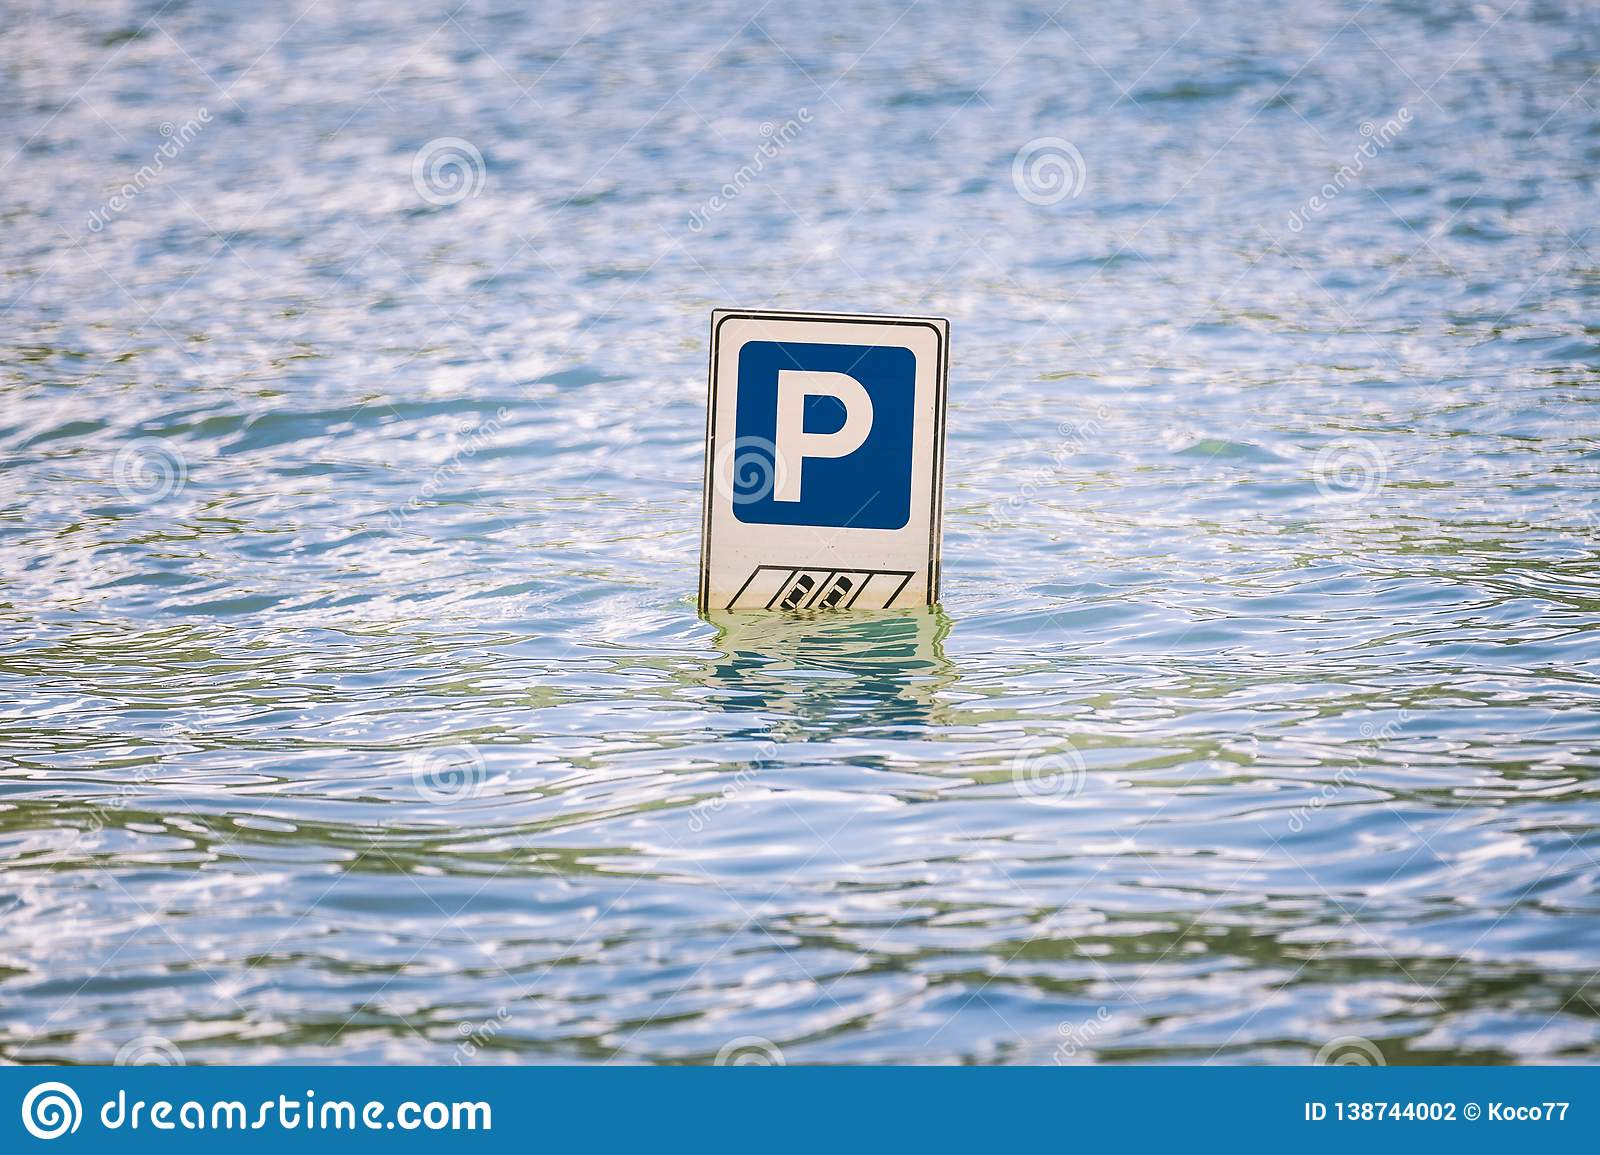 Parking cars road sign partially submerged in a flood.